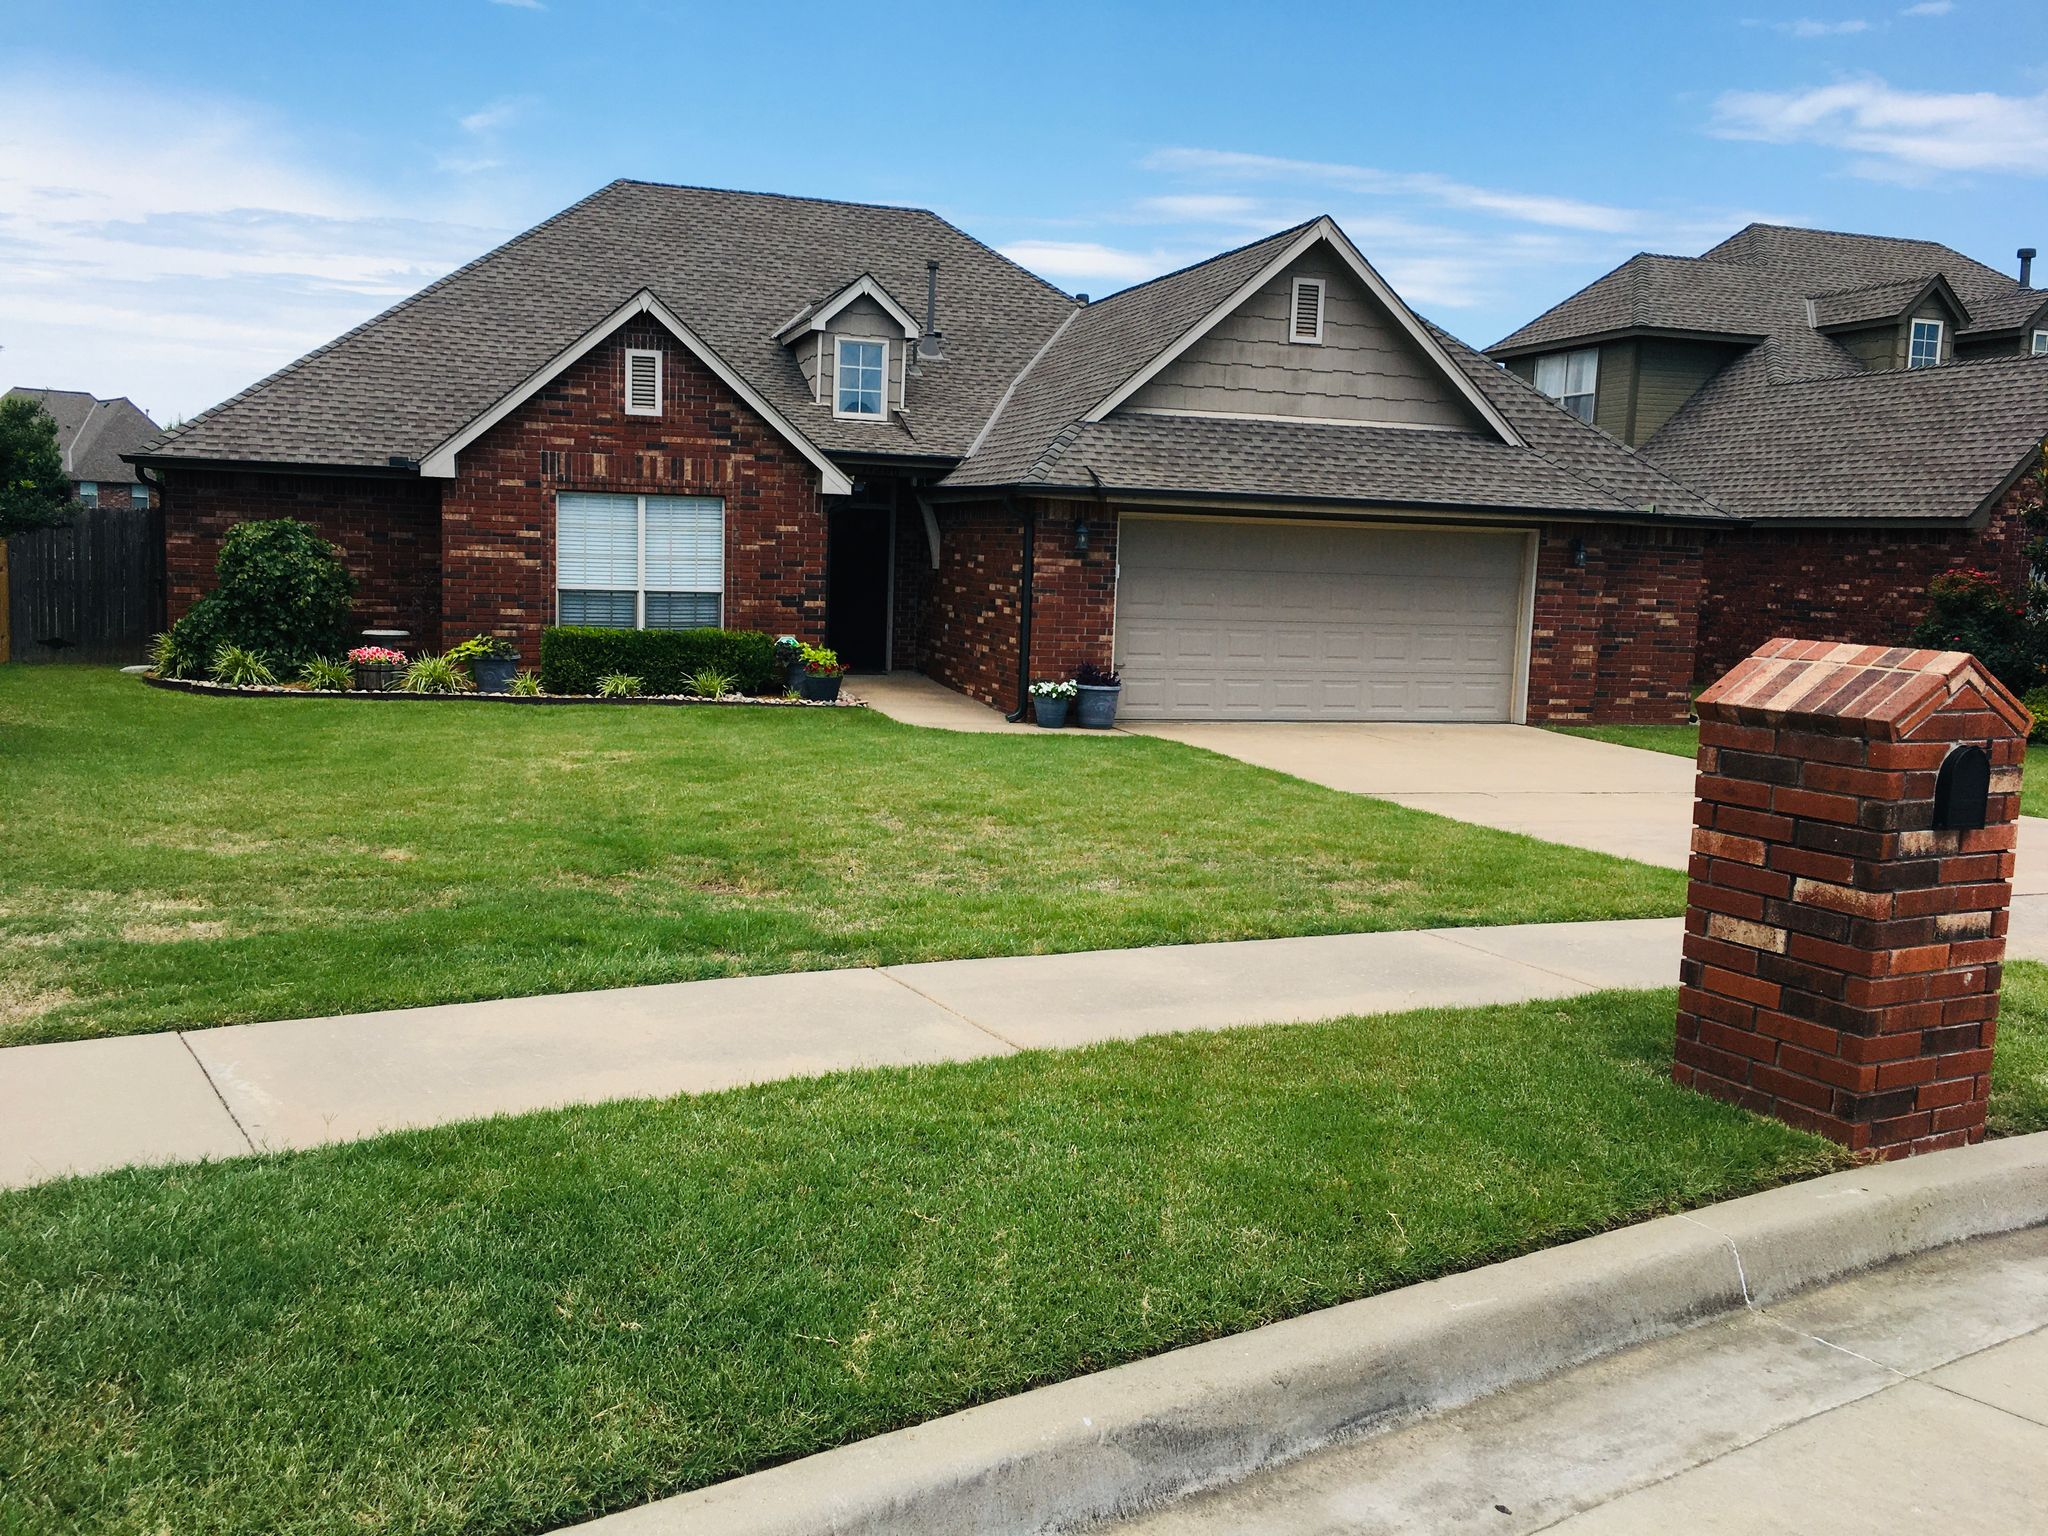 11206 n 132nd ave e owasso ok 74055 4 bed 2 bath single family home 16 photos trulia trulia